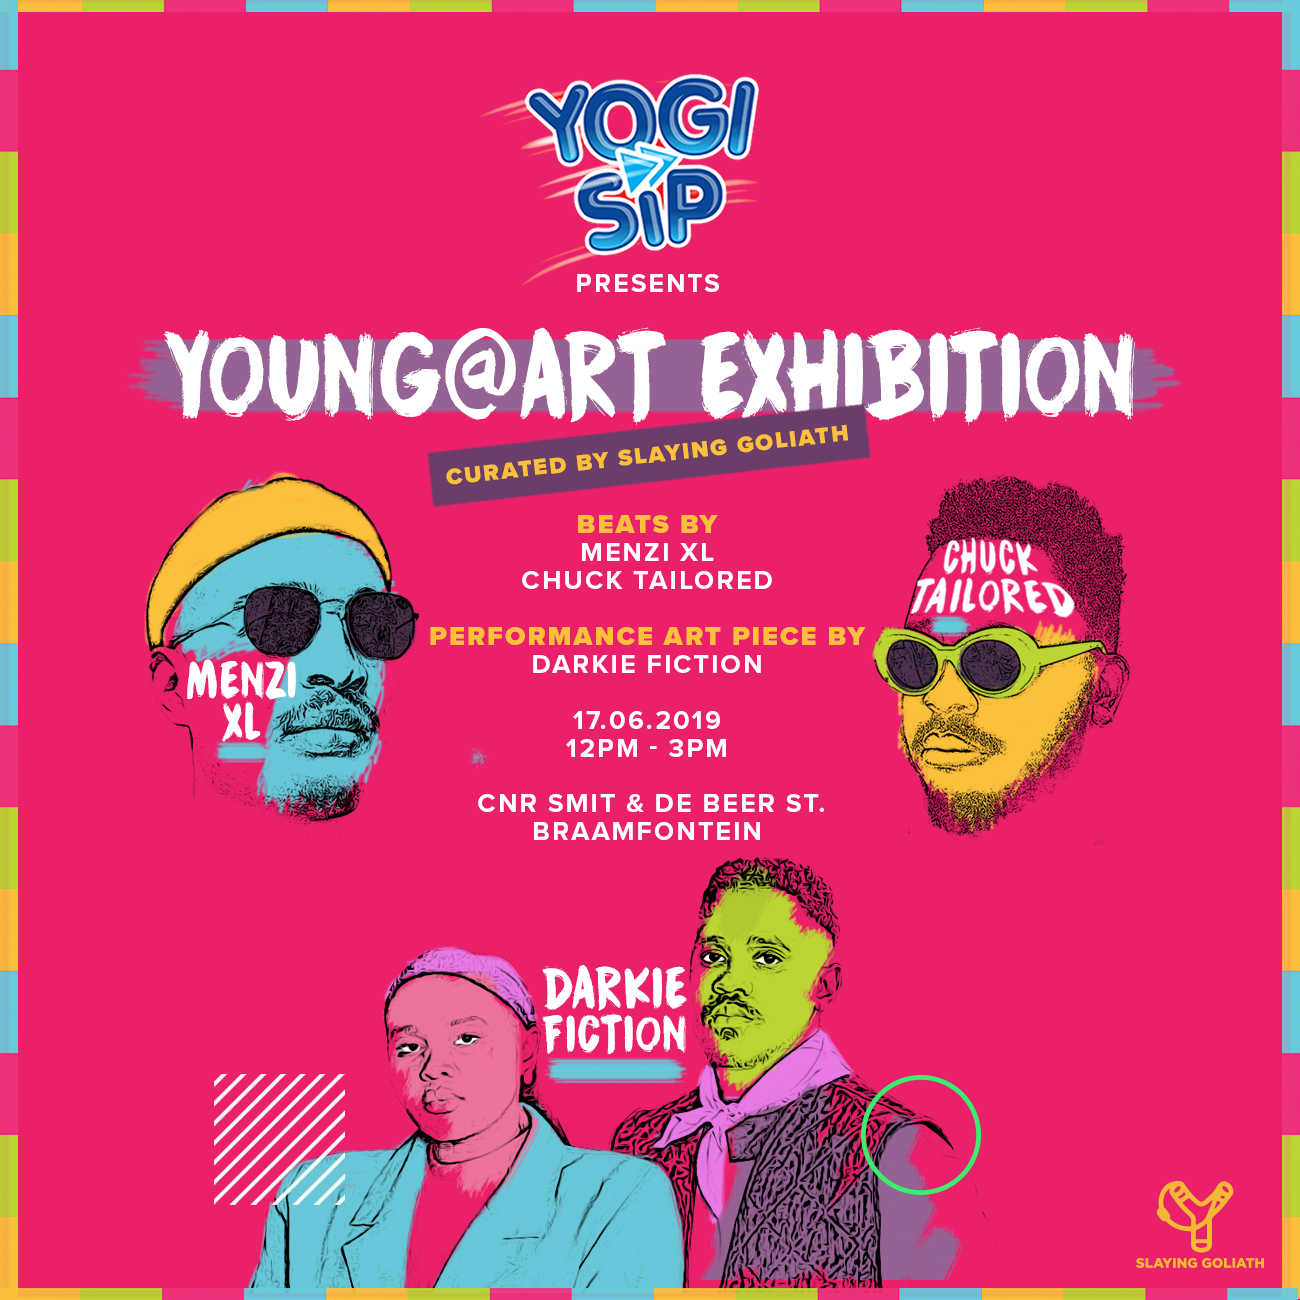 Yogisip Young@Art